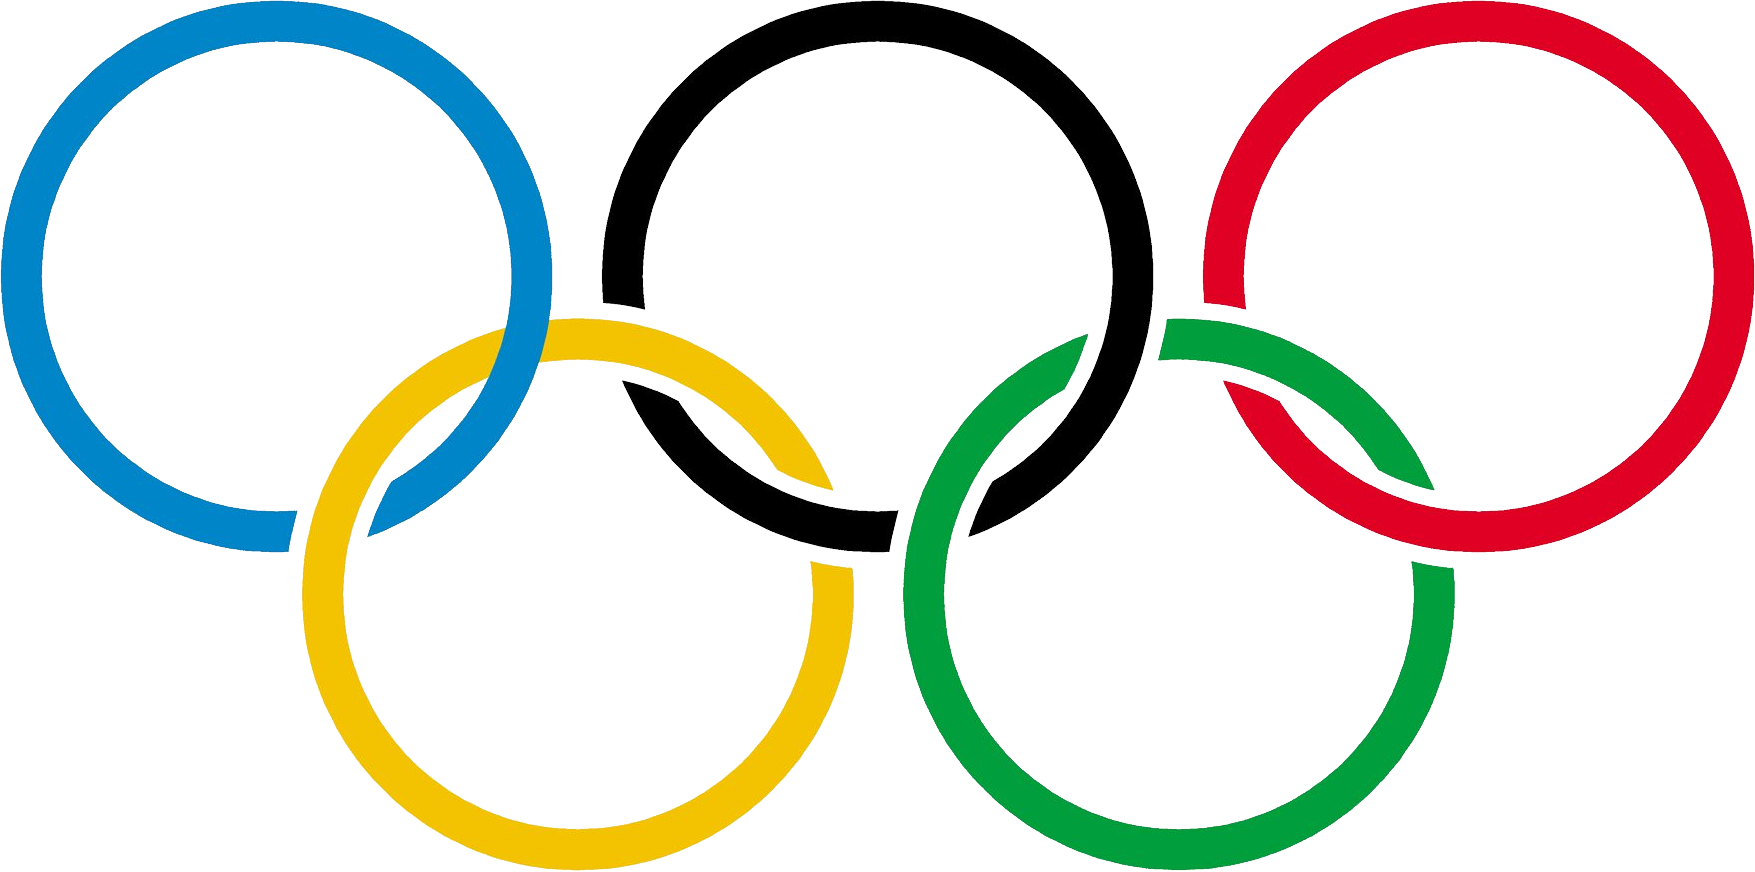 Clipart of olympic rings graphic royalty free library Olympic rings PNG images free download graphic royalty free library